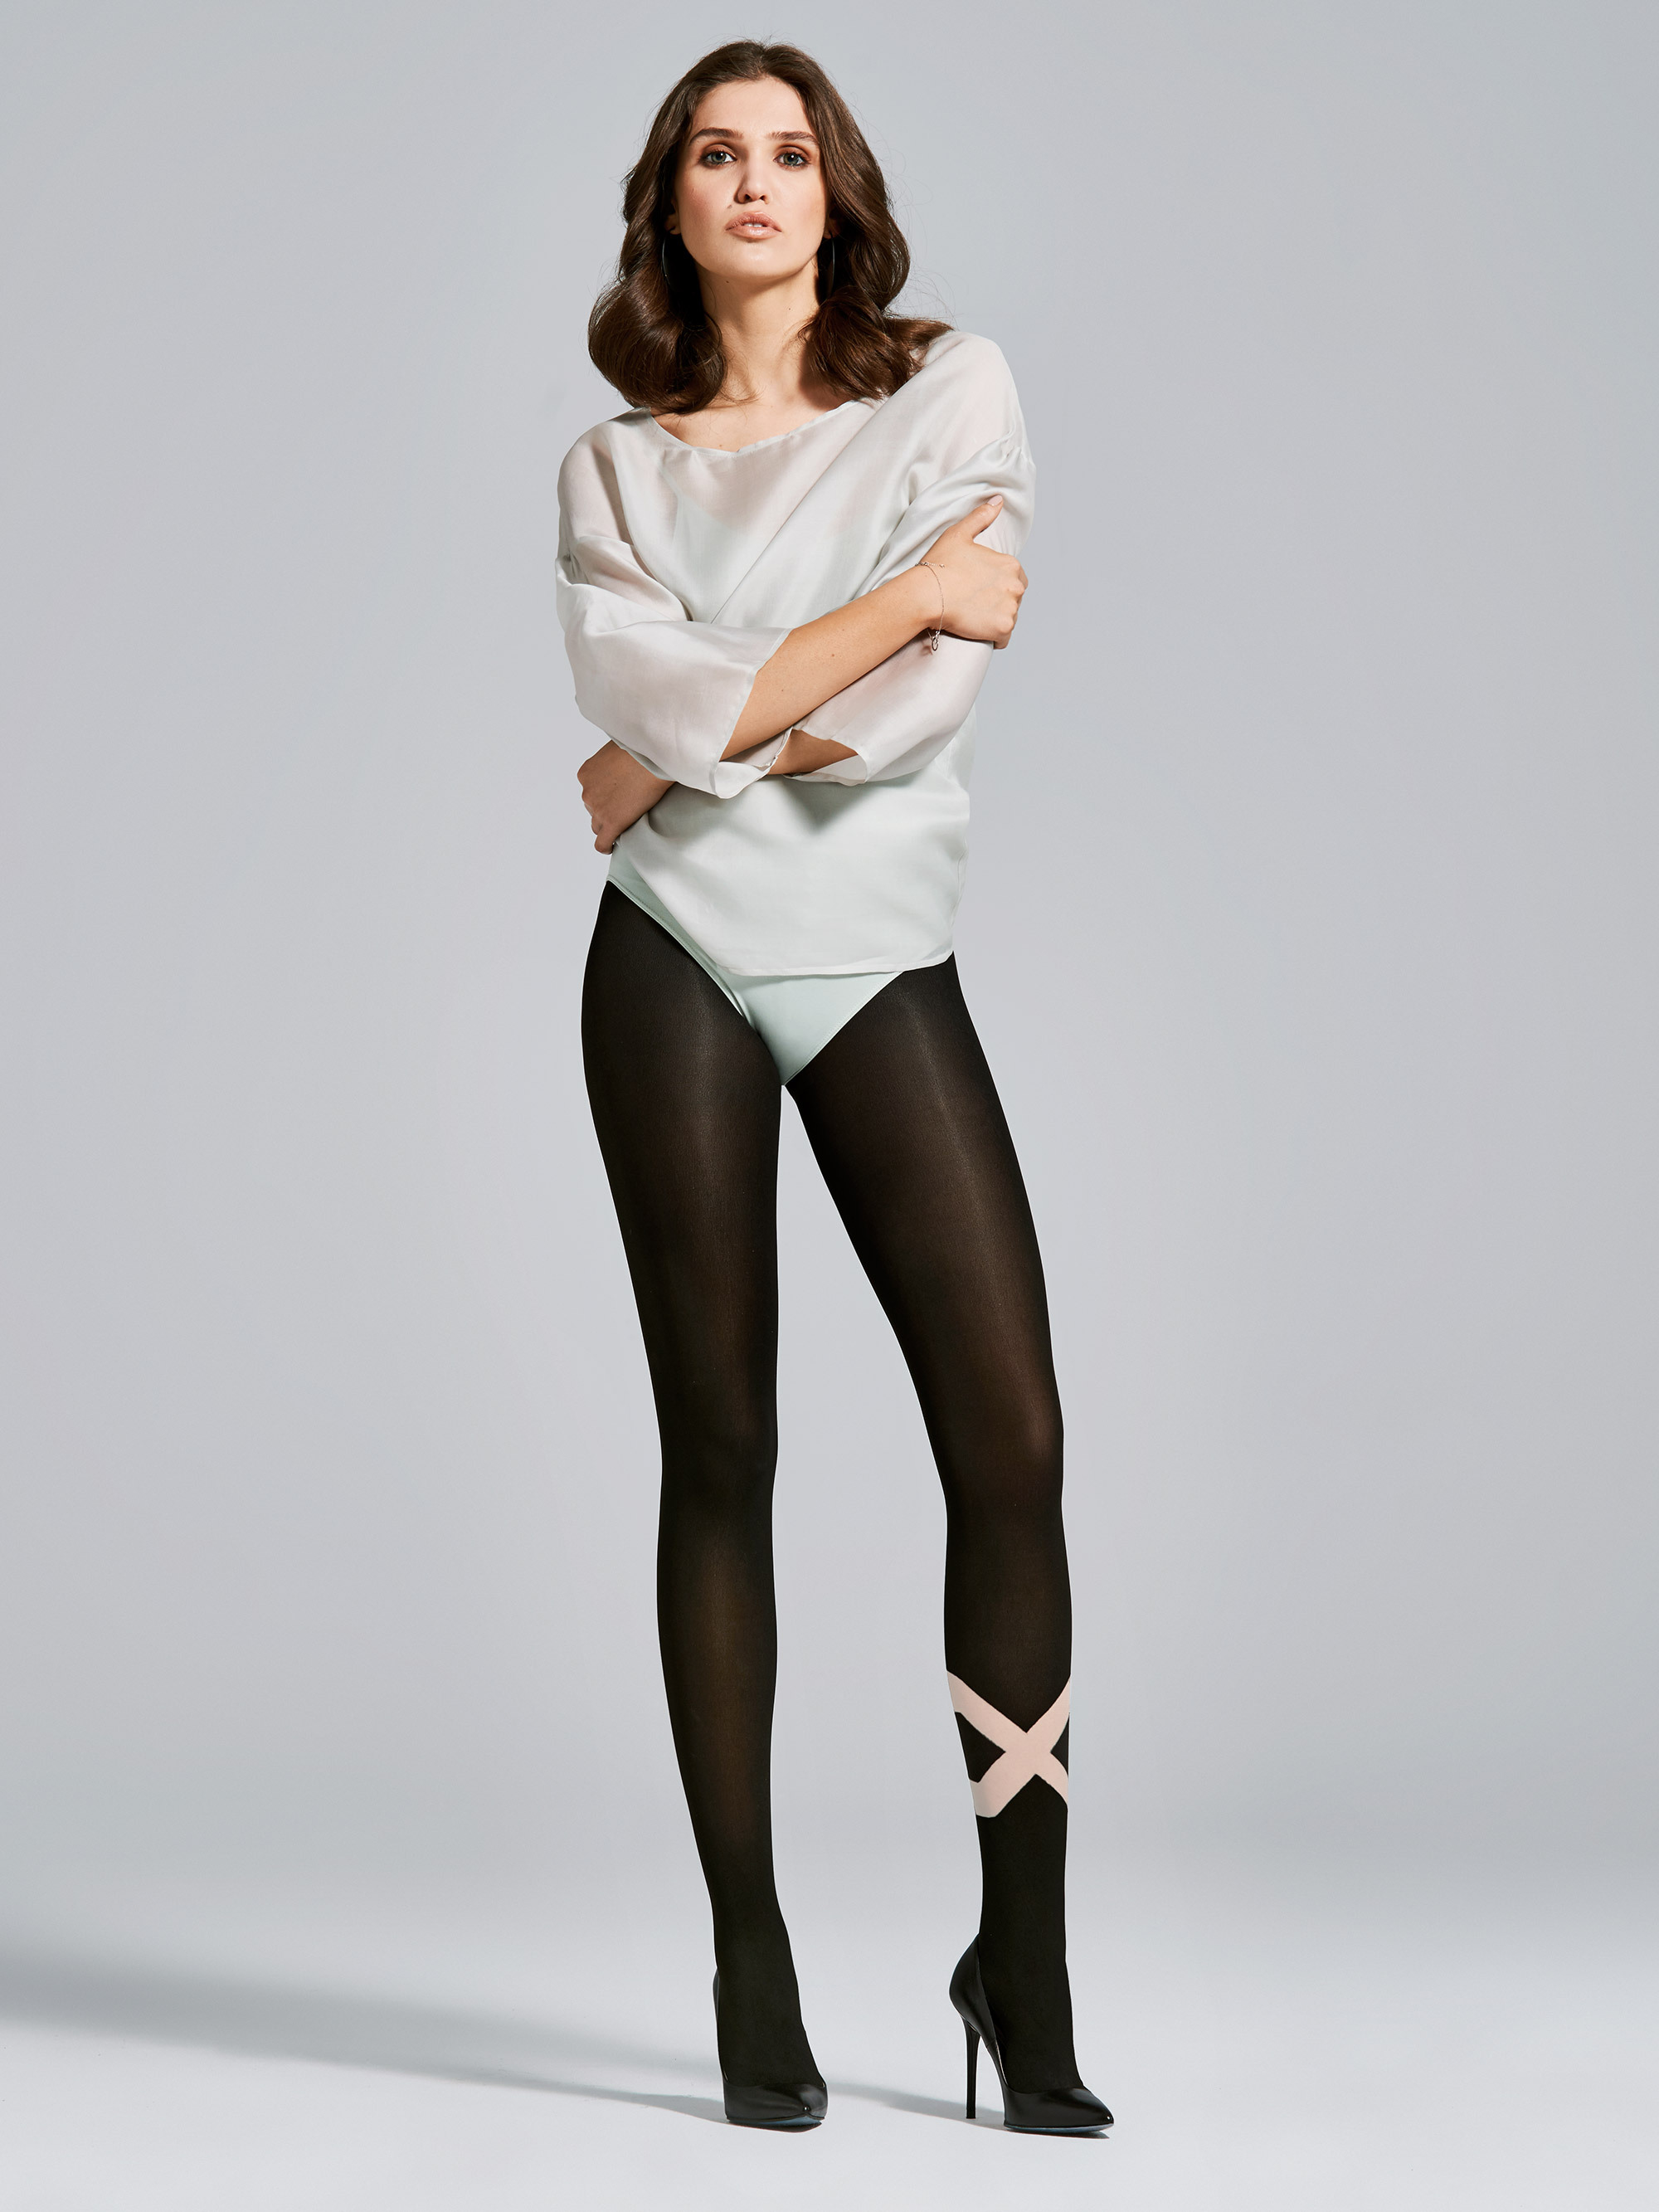 Fiore: Asymmetrical Tuxedo Opaque 3D Microfibre Tights (2 Left!)